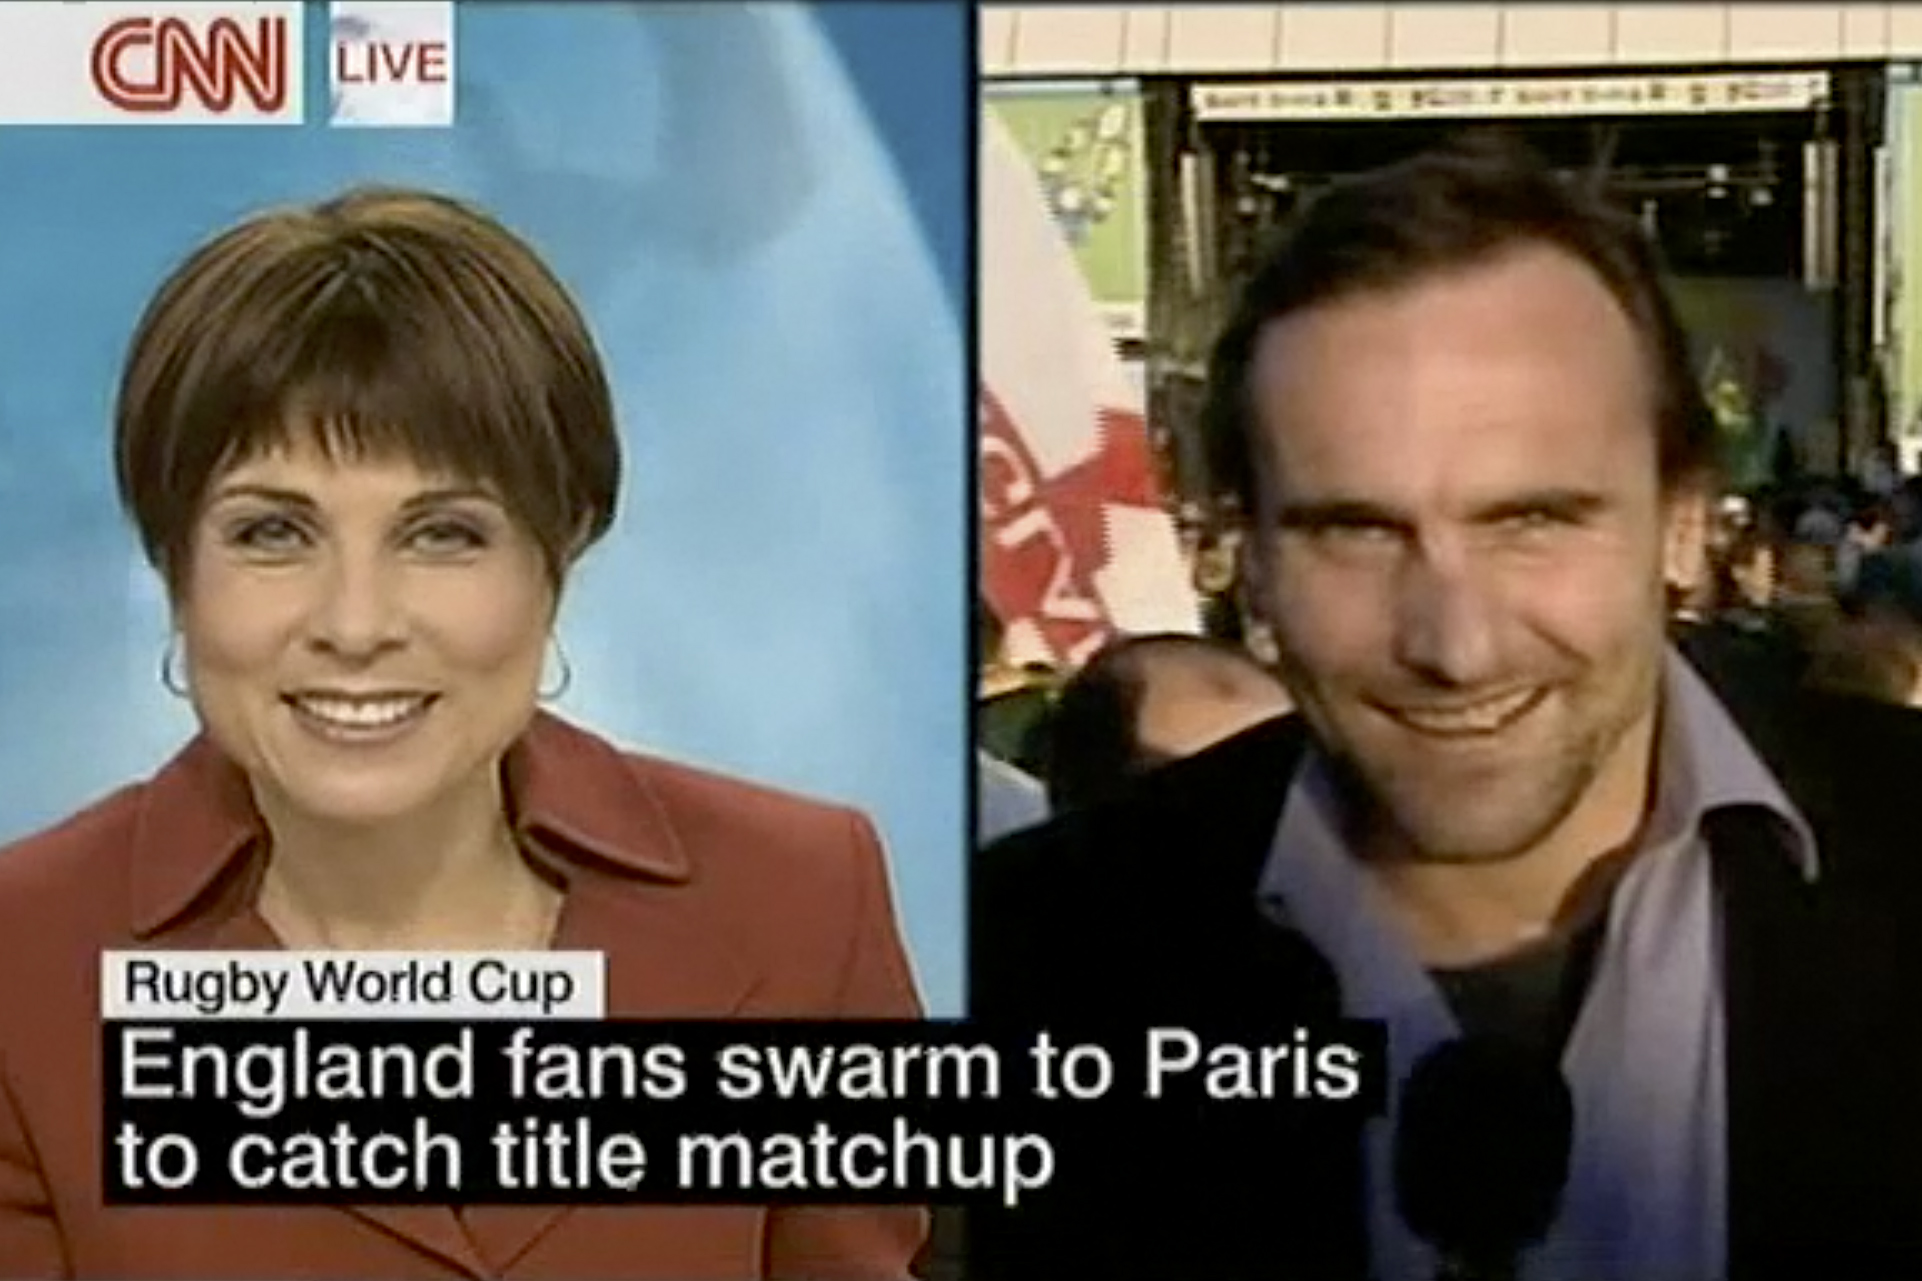 A video still from Ware's coverage of the 2007 Rugby World Cup.